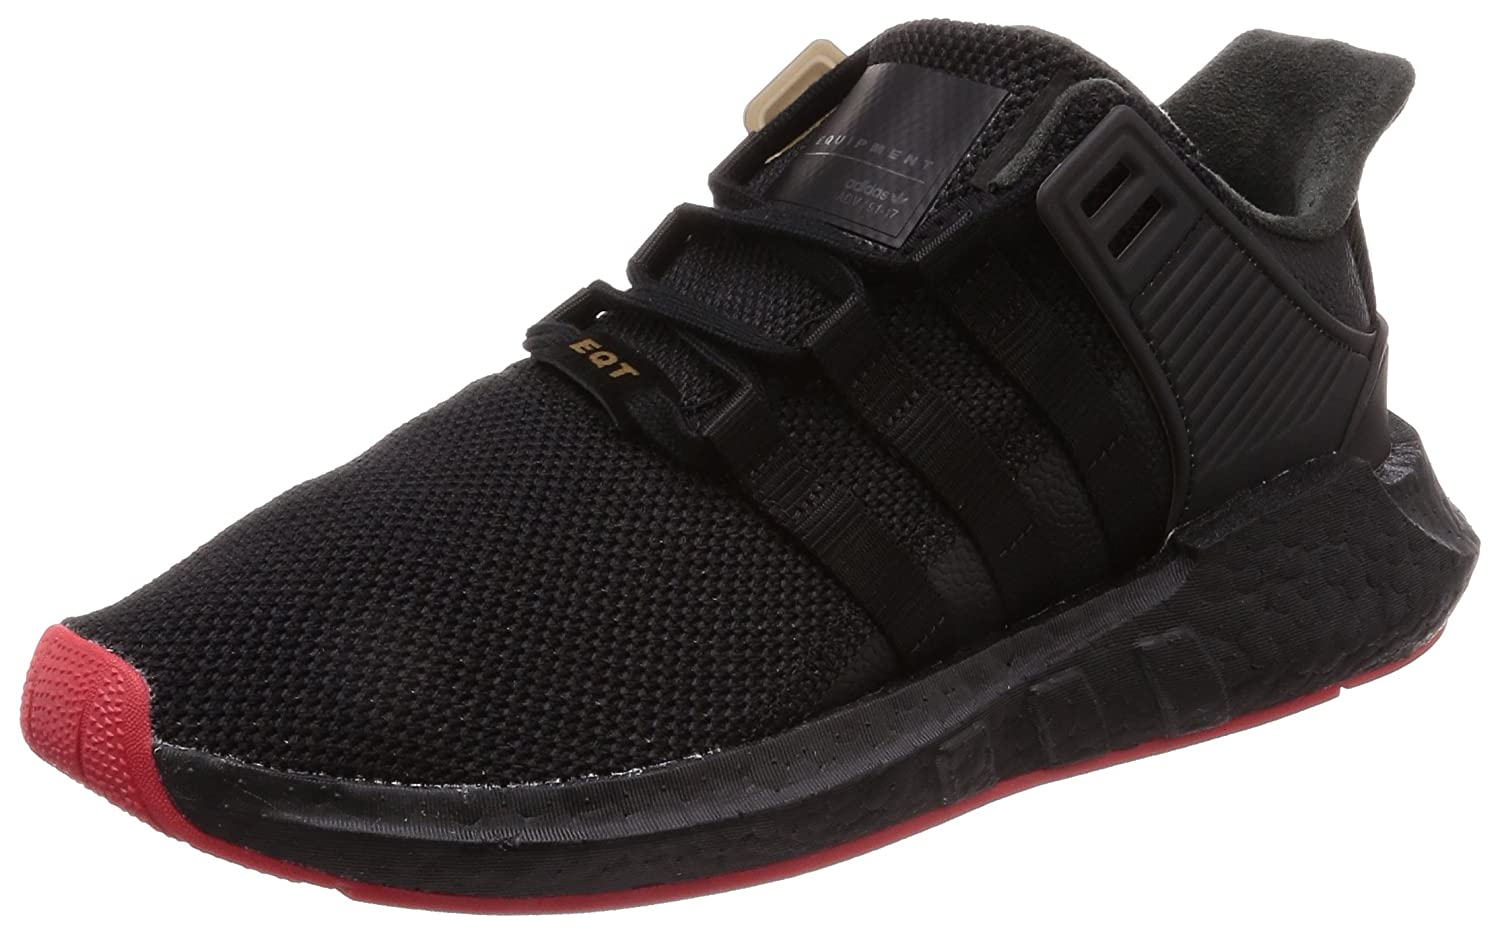 adidas EQT Support 91/17 Black/Red CQ2394